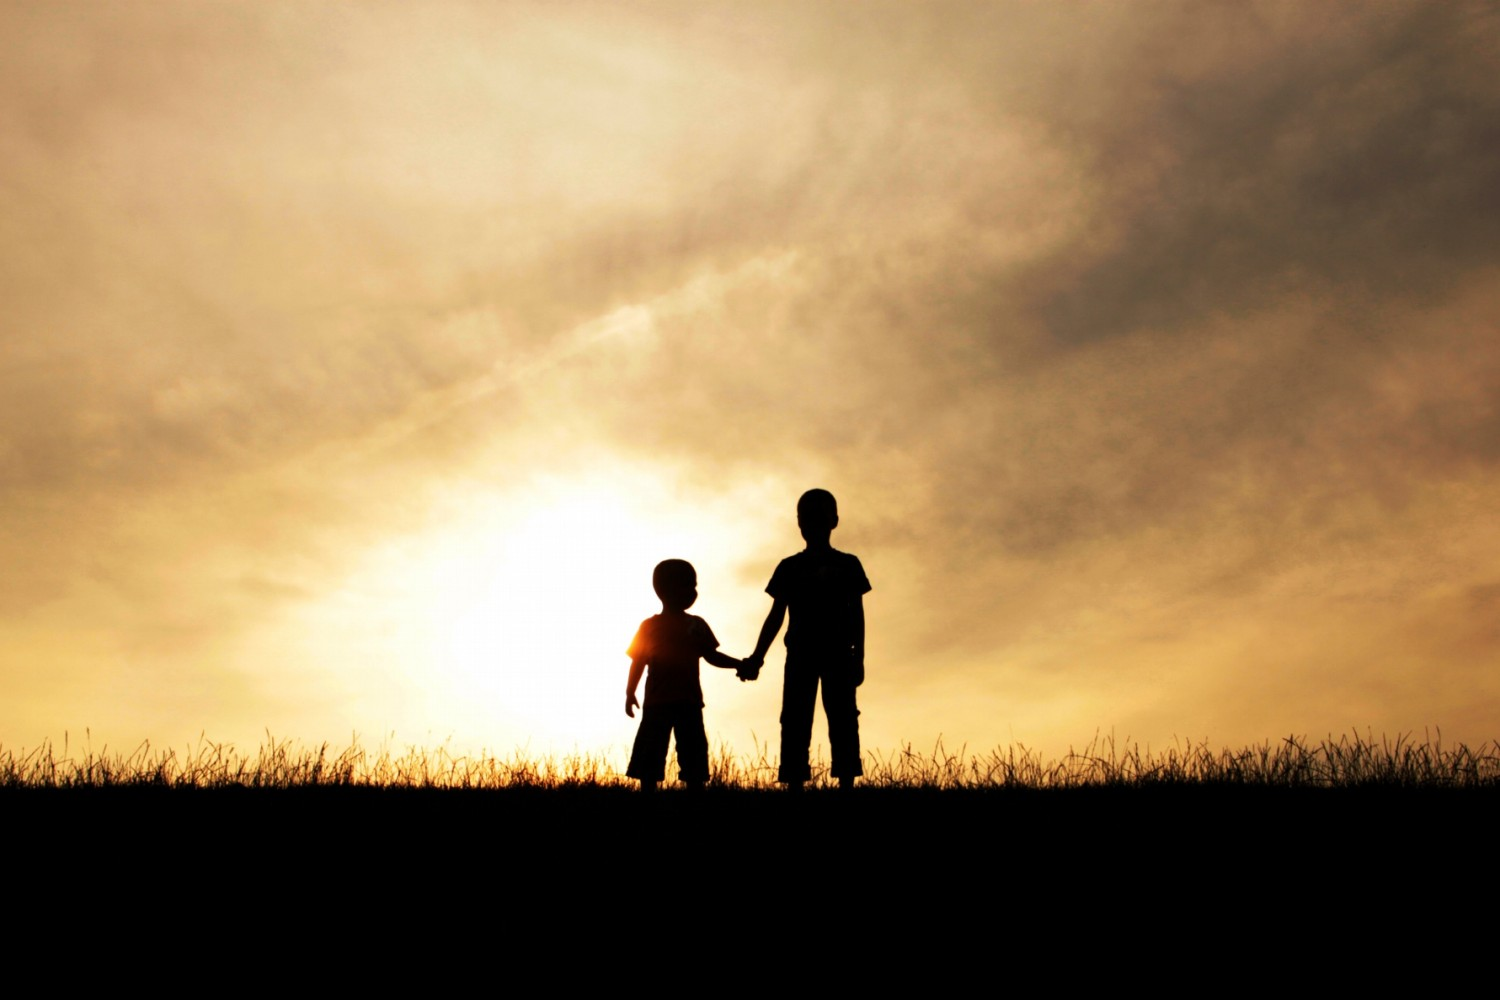 Weekly Contest: 25 Endearing Holding Hands Photos + New Theme